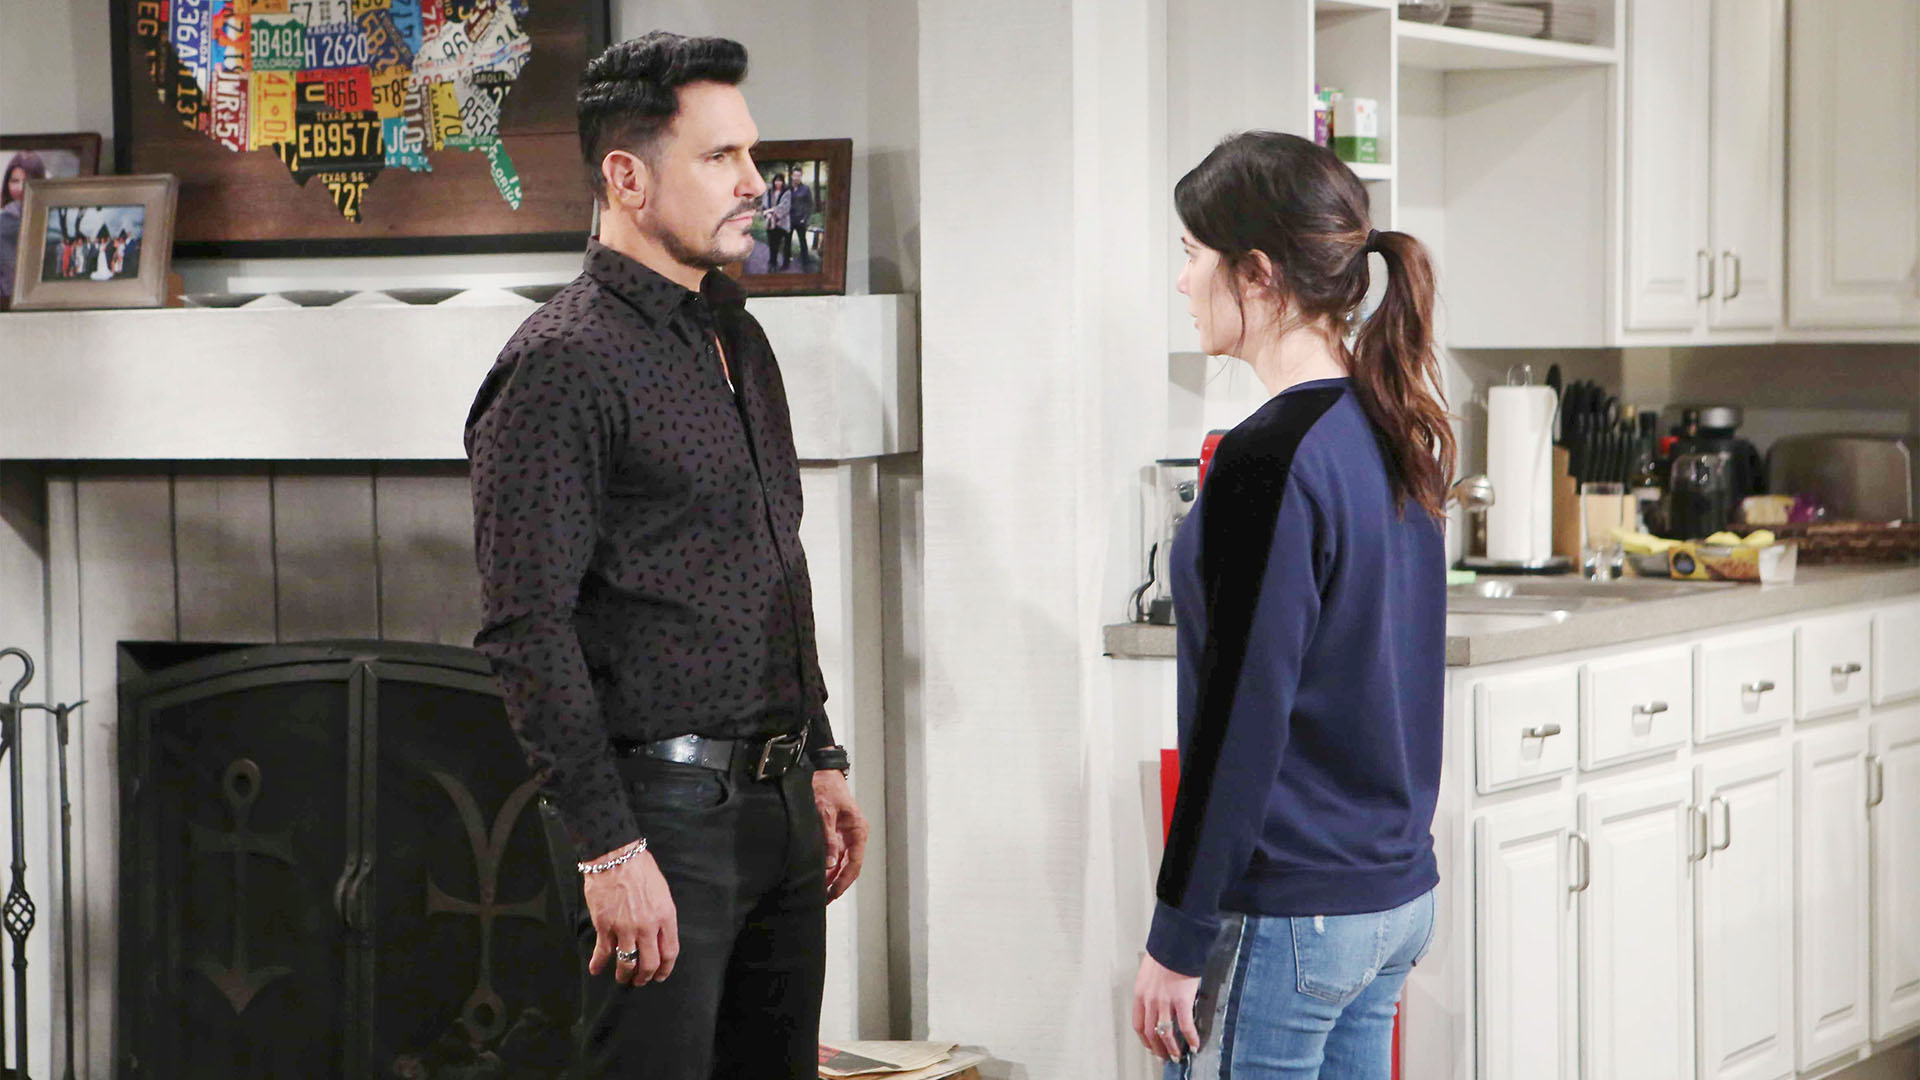 Hoping to bring comfort and resolve to Steffy, Bill admits his true feelings and advises her to not allow anyone to bring shame upon her.